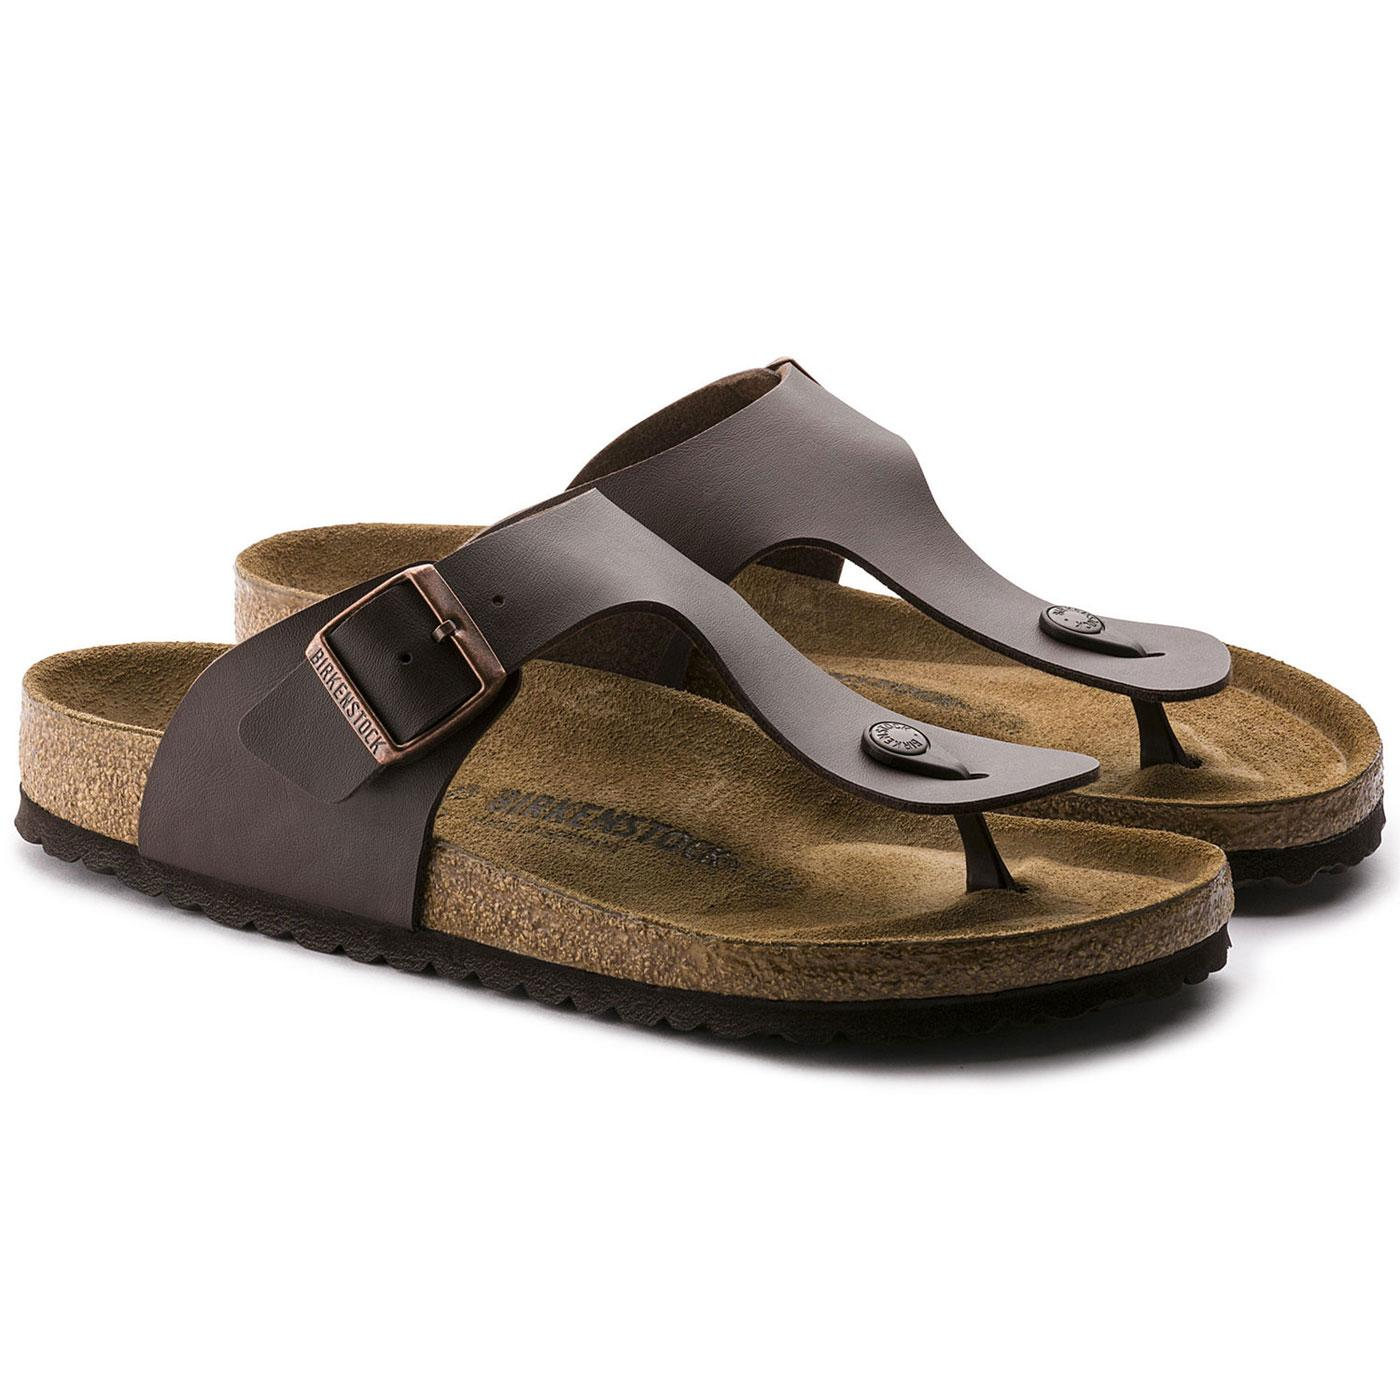 Ramses BIRKENSTOCK Men's Retro Toe Grip Sandals DB